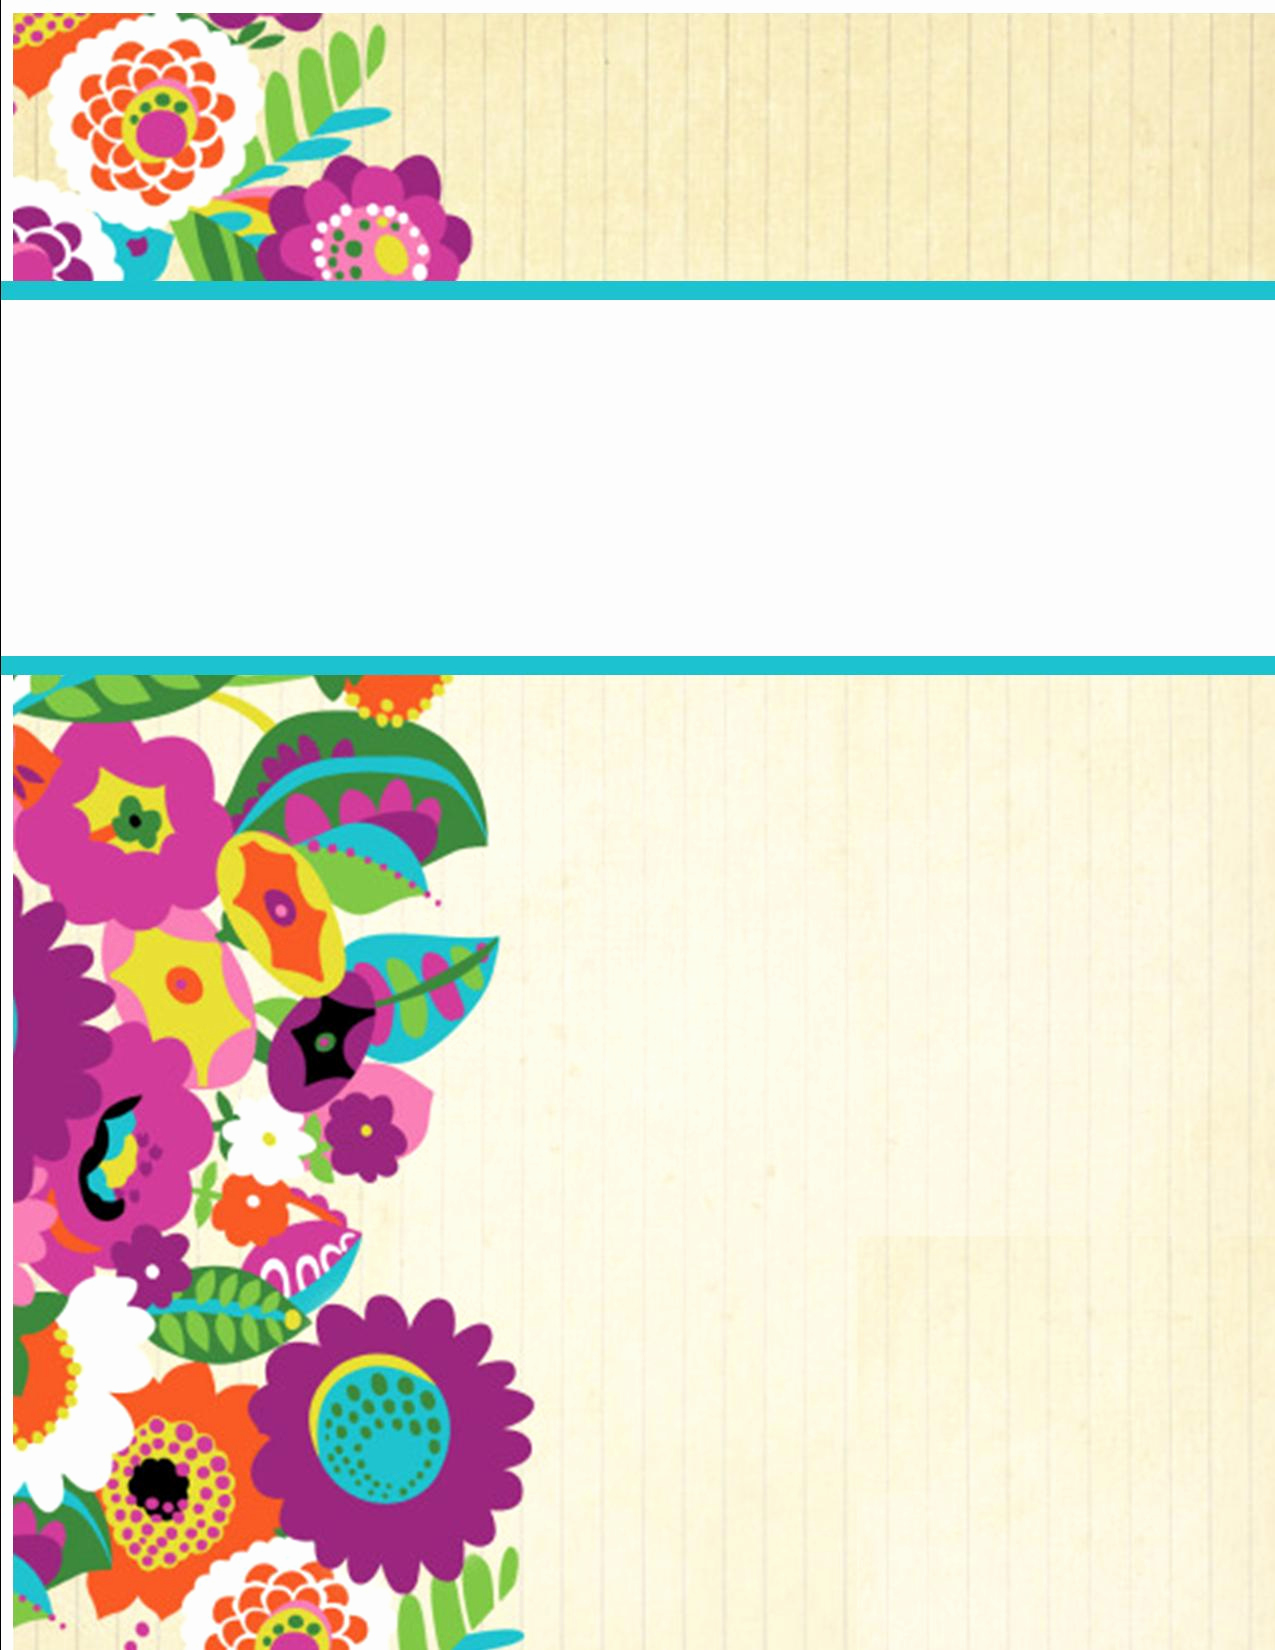 Free Binder Cover Templates Lovely My Cute Binder Covers